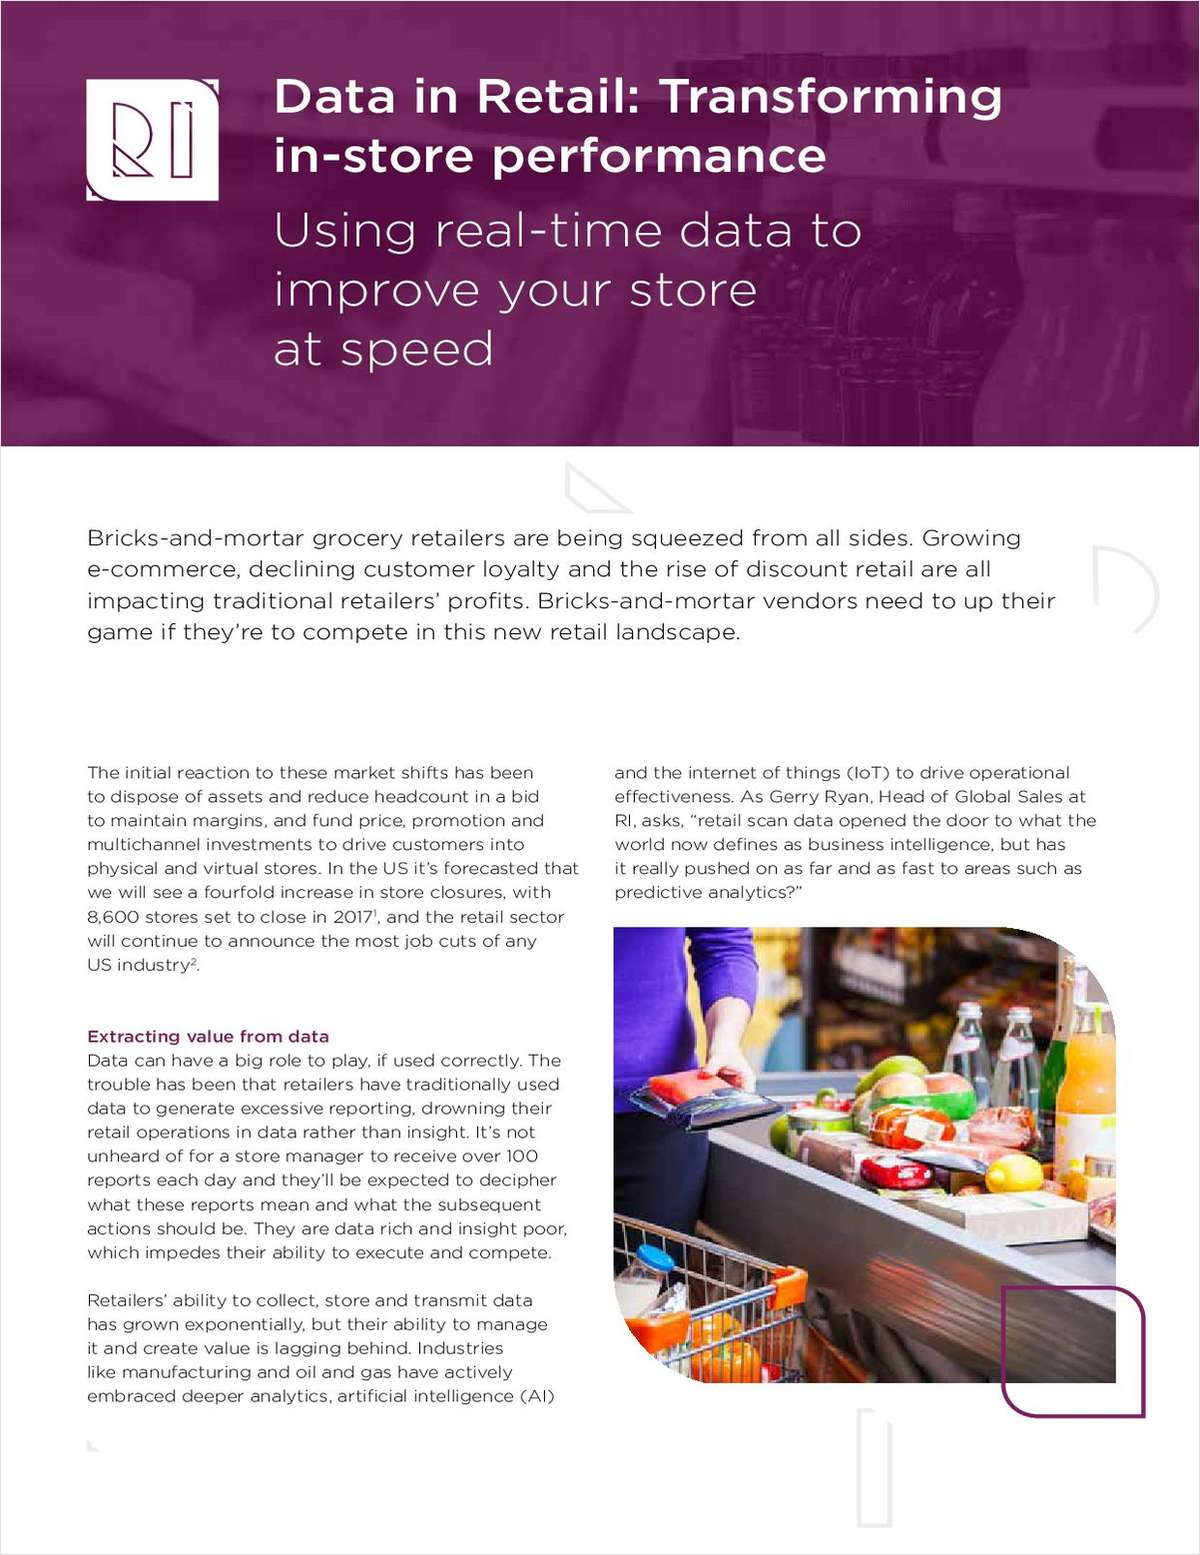 Data in Retail: Transforming In-Store Performance